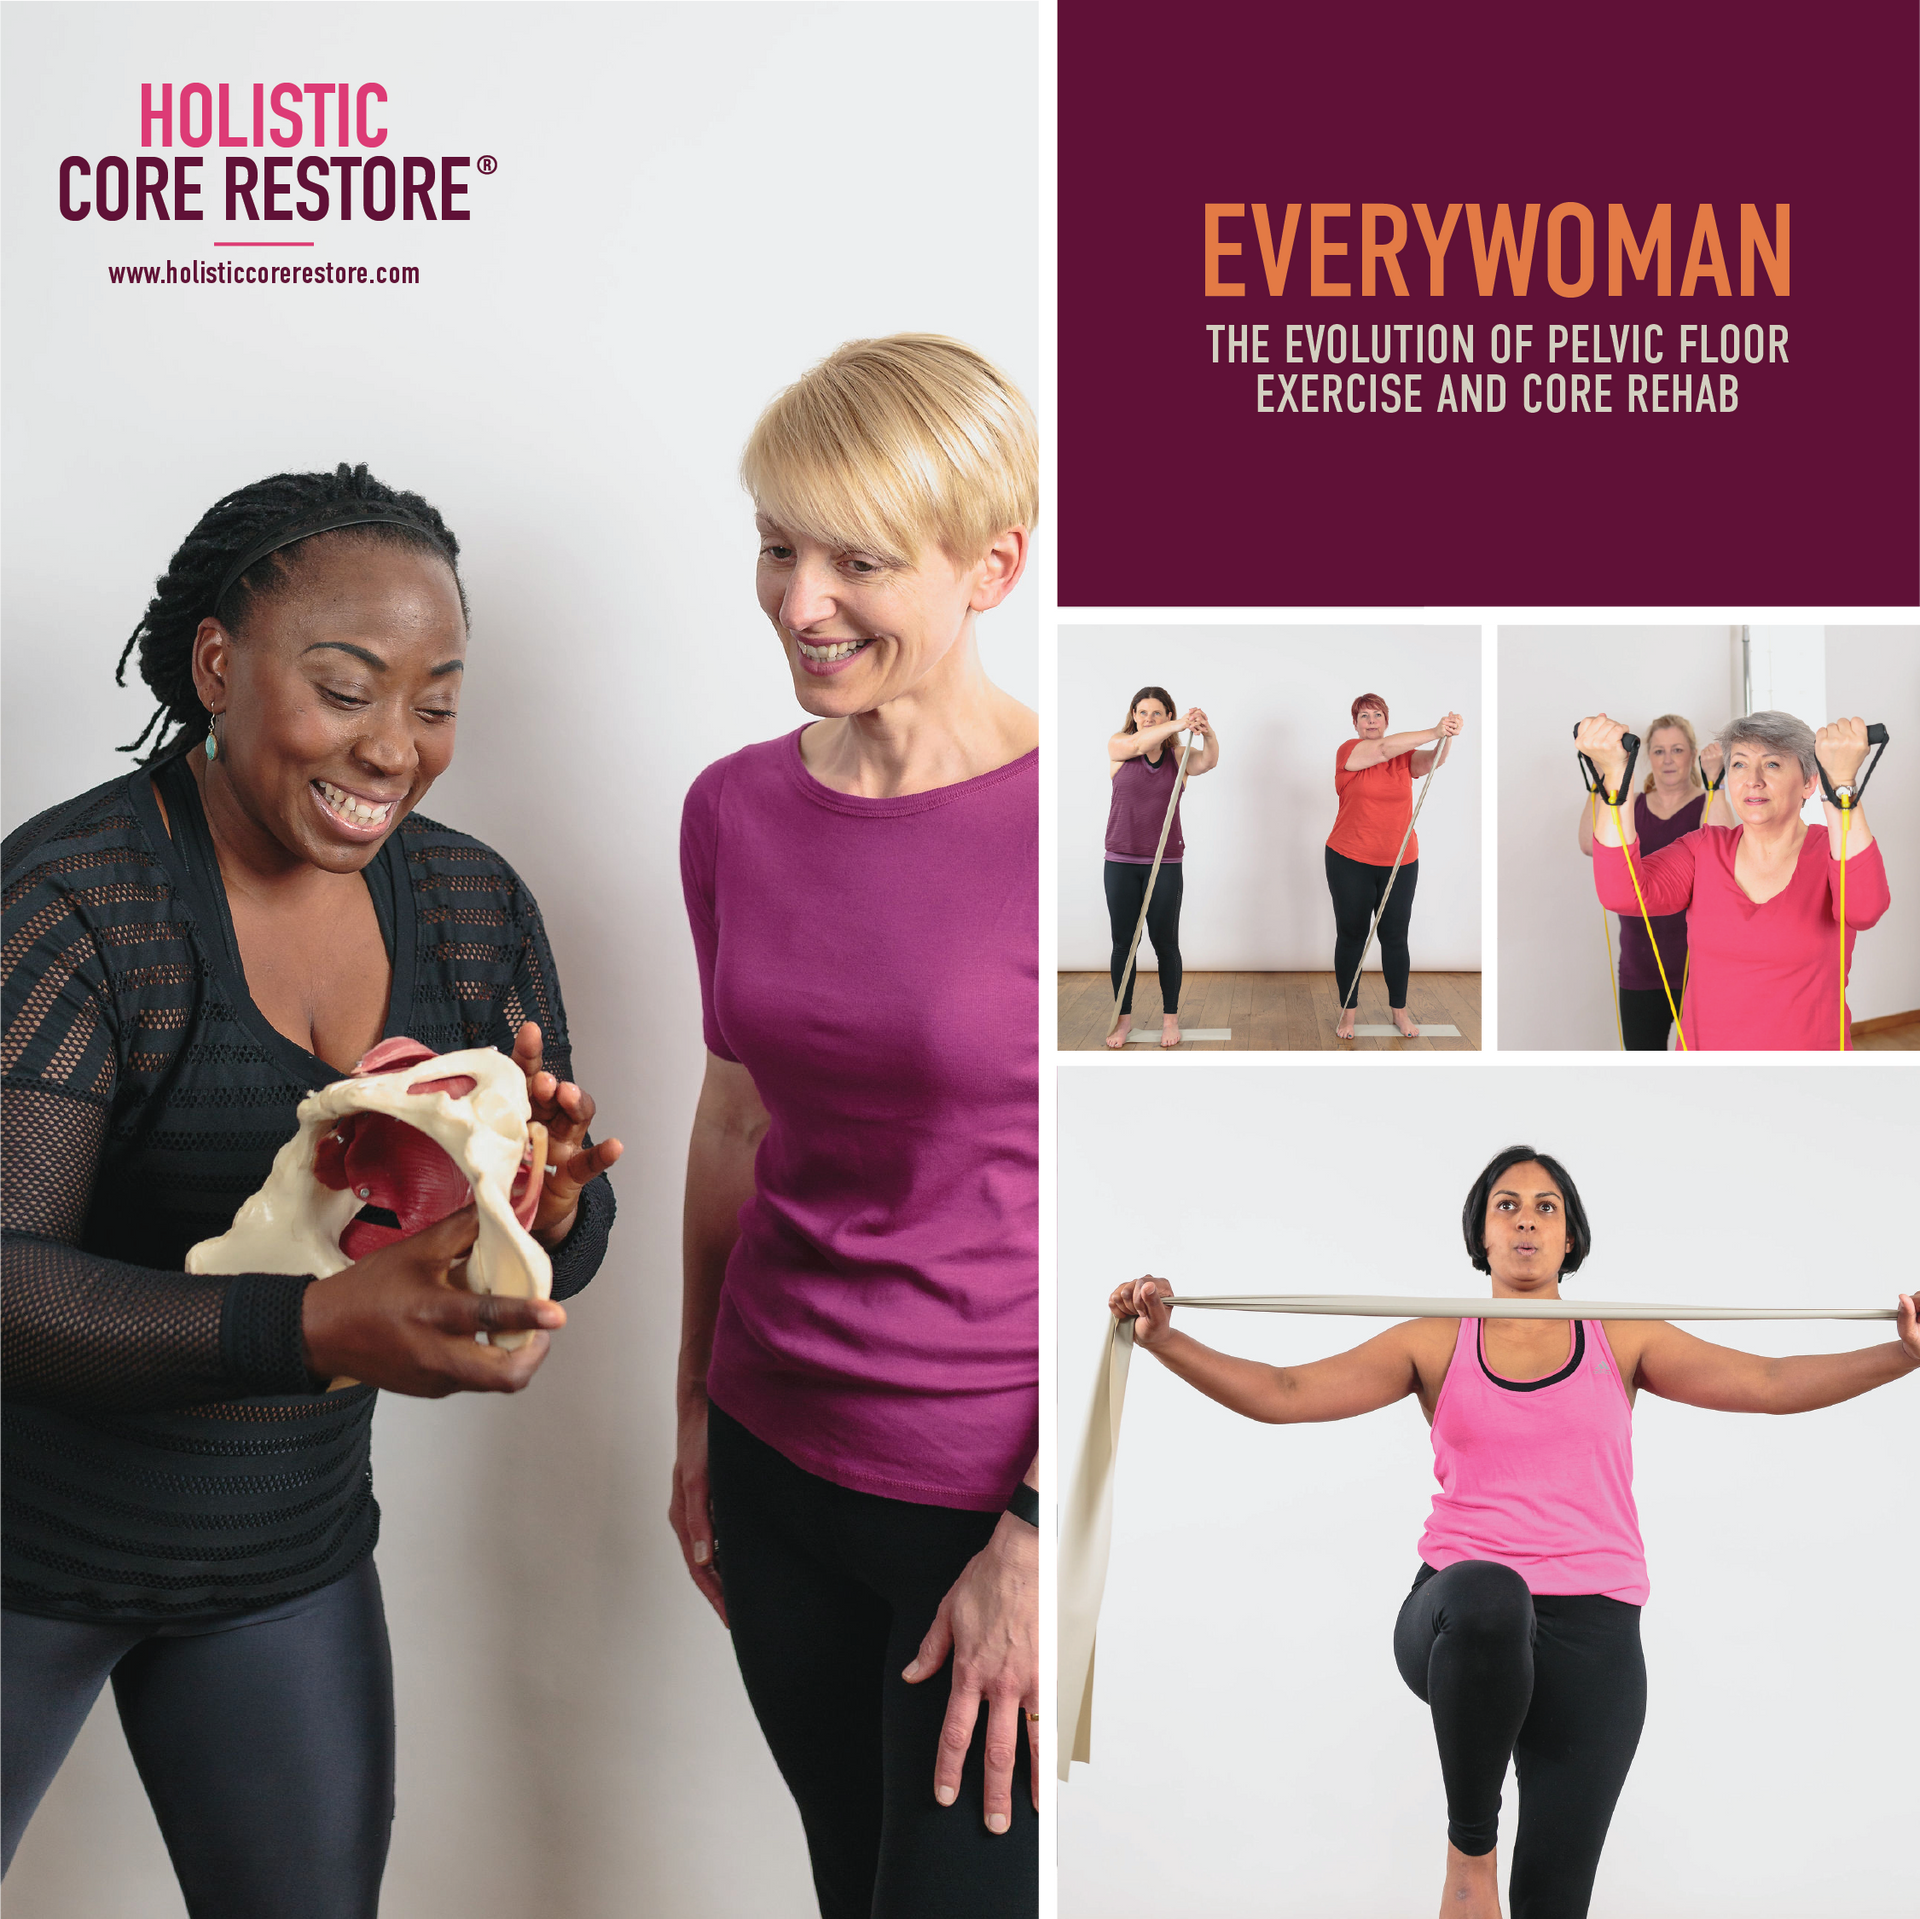 Join Our Most Popular, 12 Week Group Pelvic Floor & Core Strengthening Course for Women.